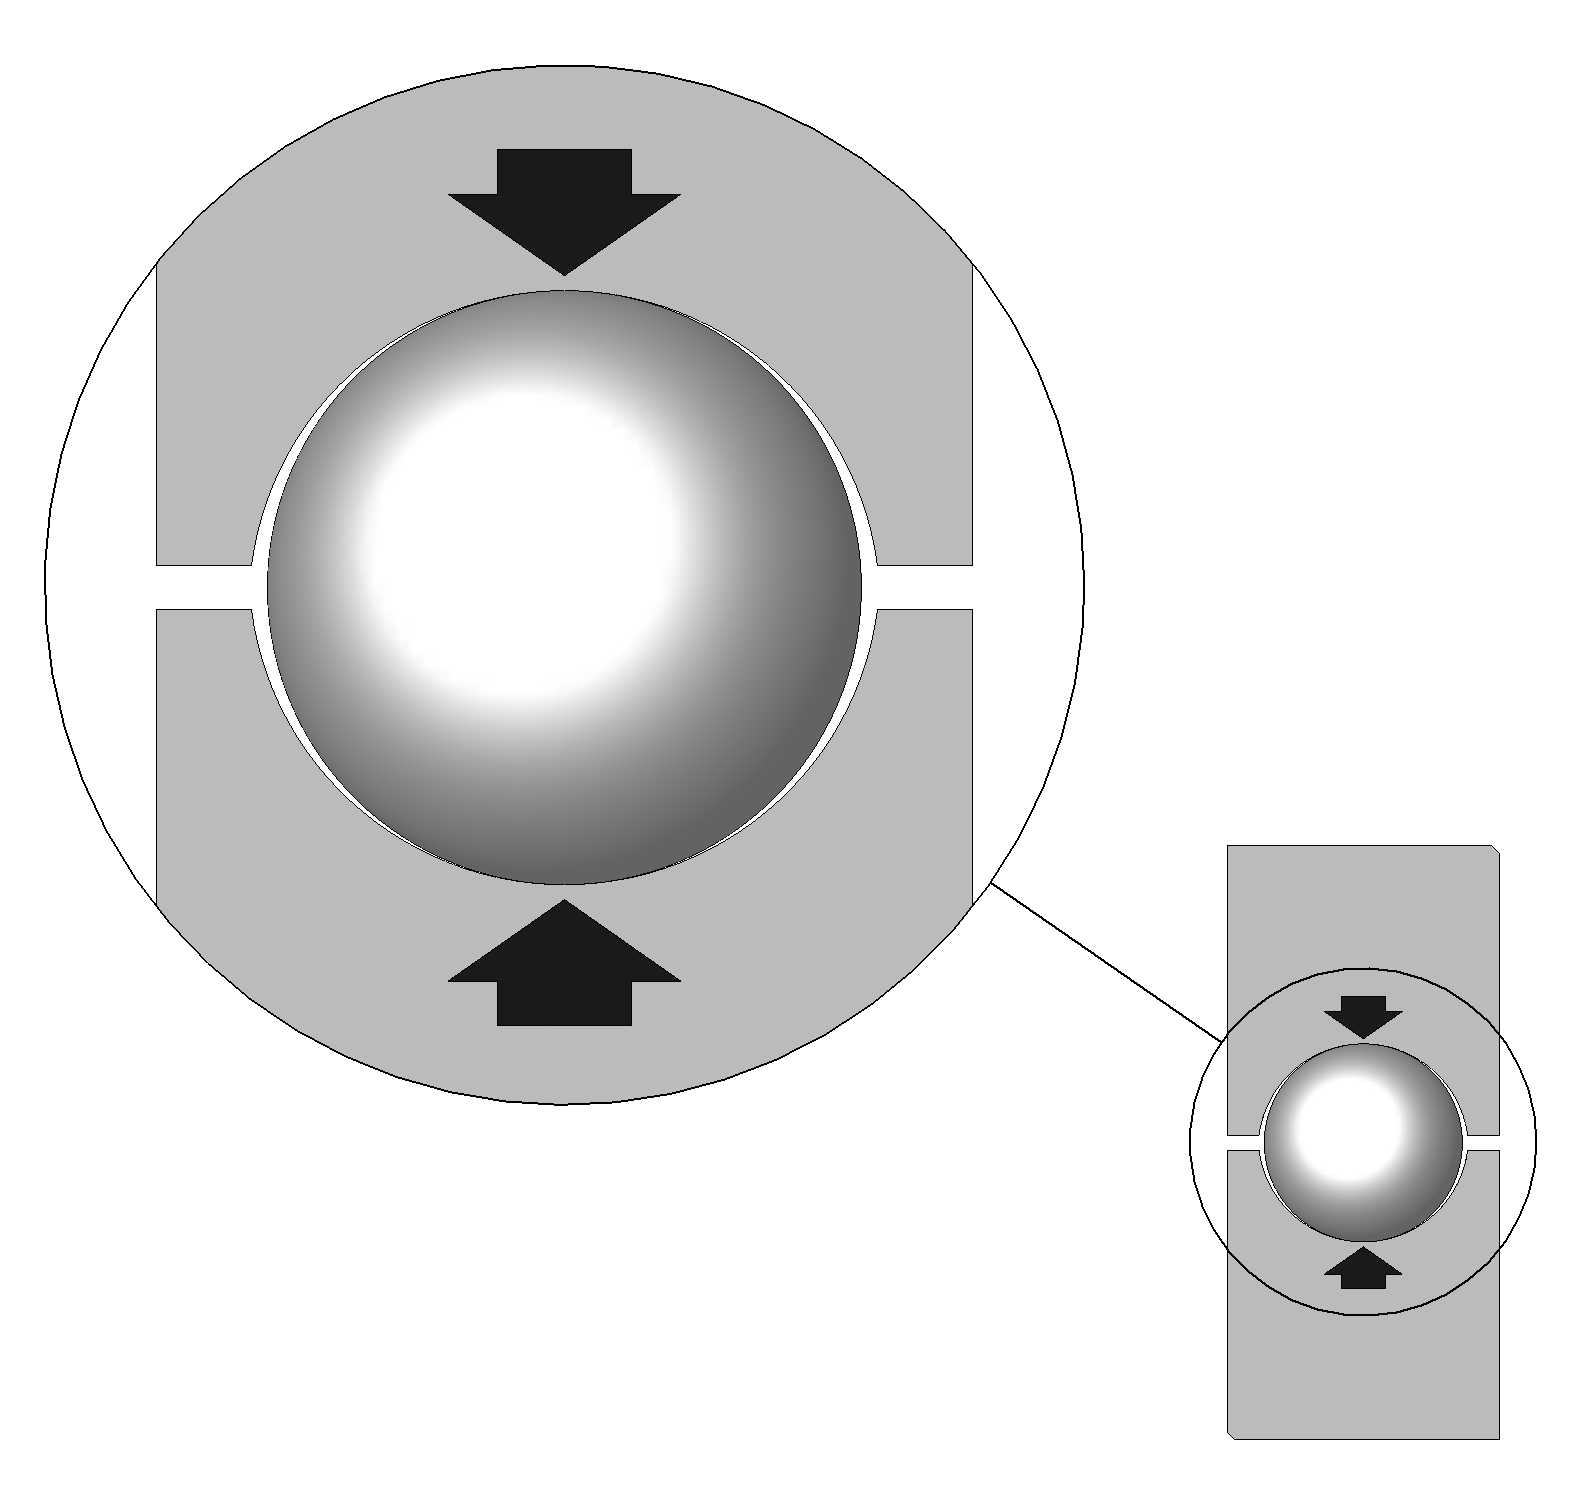 Point Of Contact: File:Rail-guides Two-point-contact Detail Arrows.png